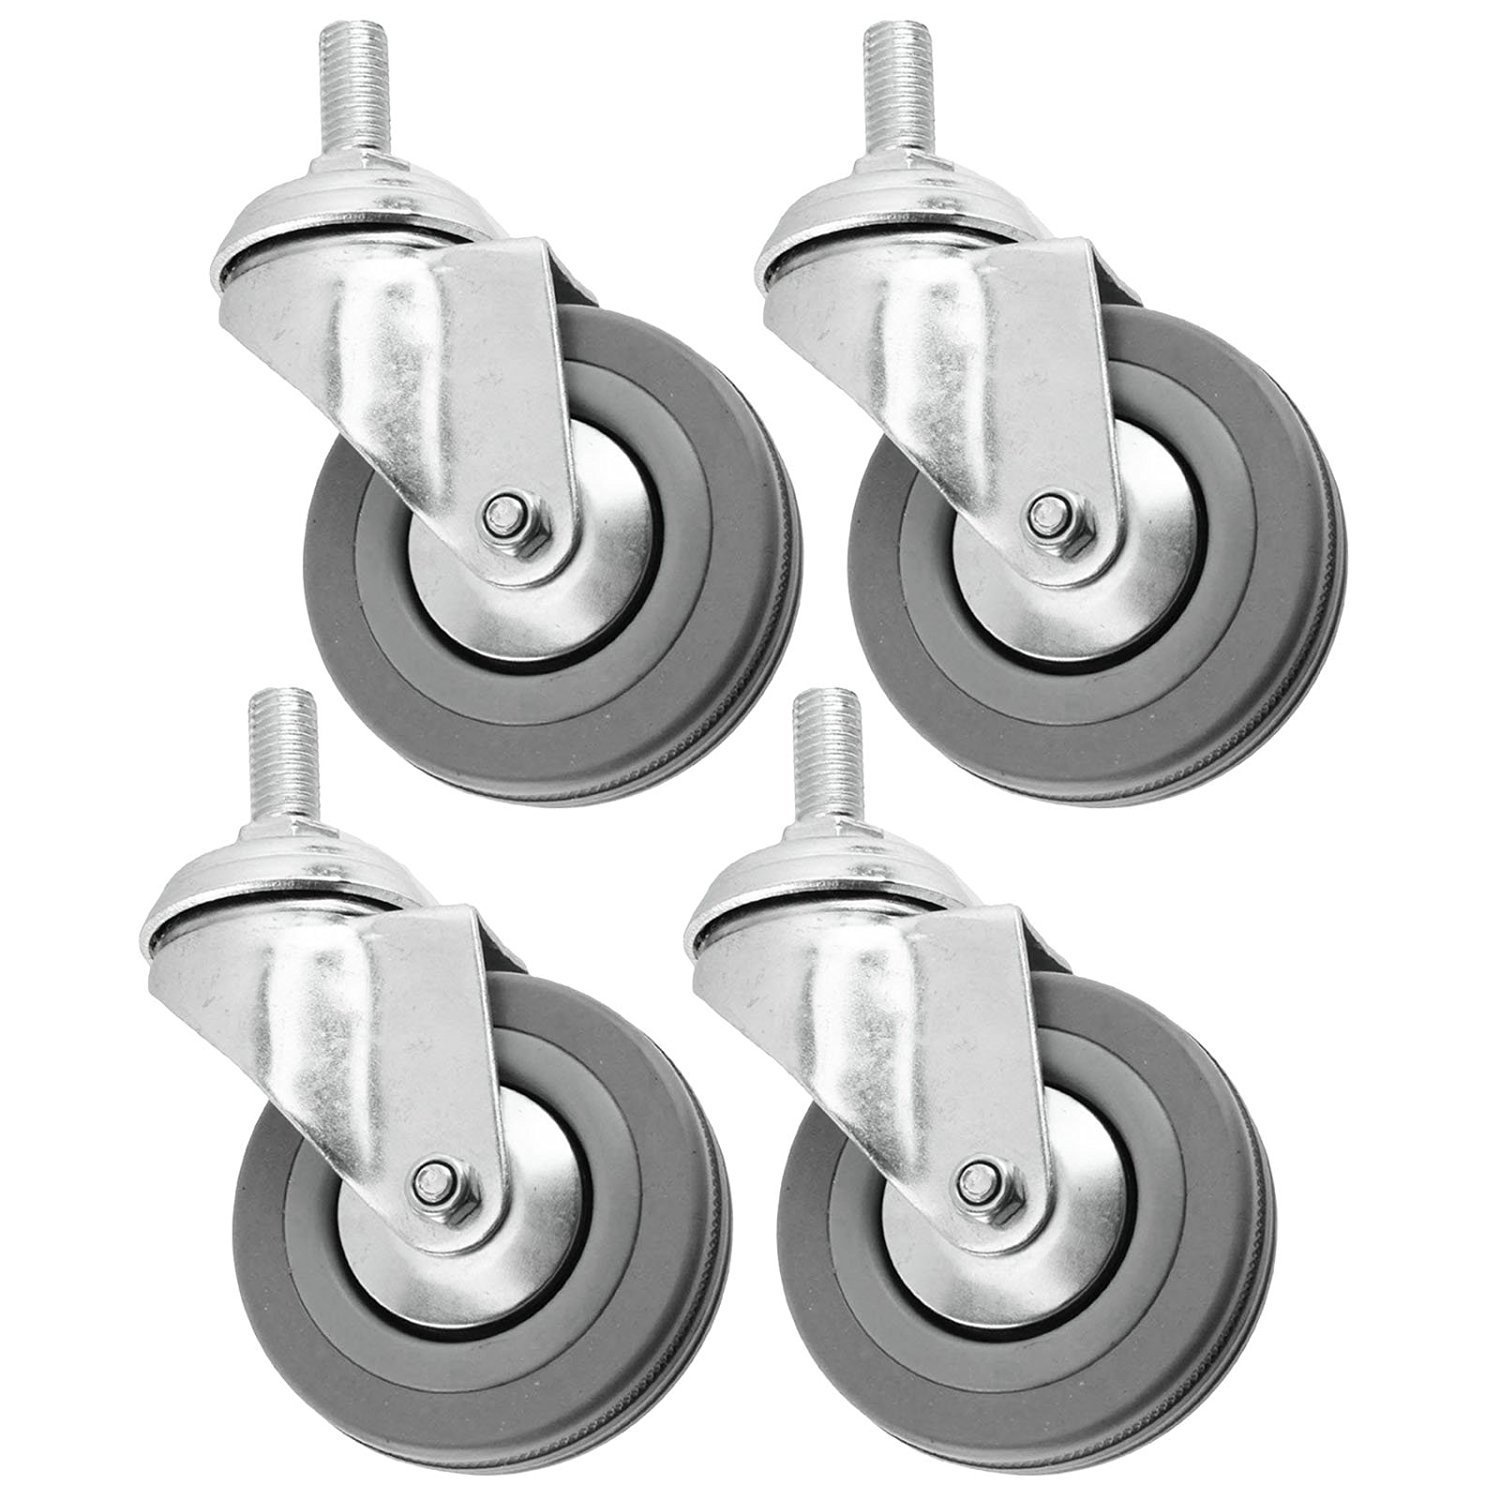 Castor Wheels 50mm M10 Threaded for Divan Bed Cabinet Drawers x 4 Nuts